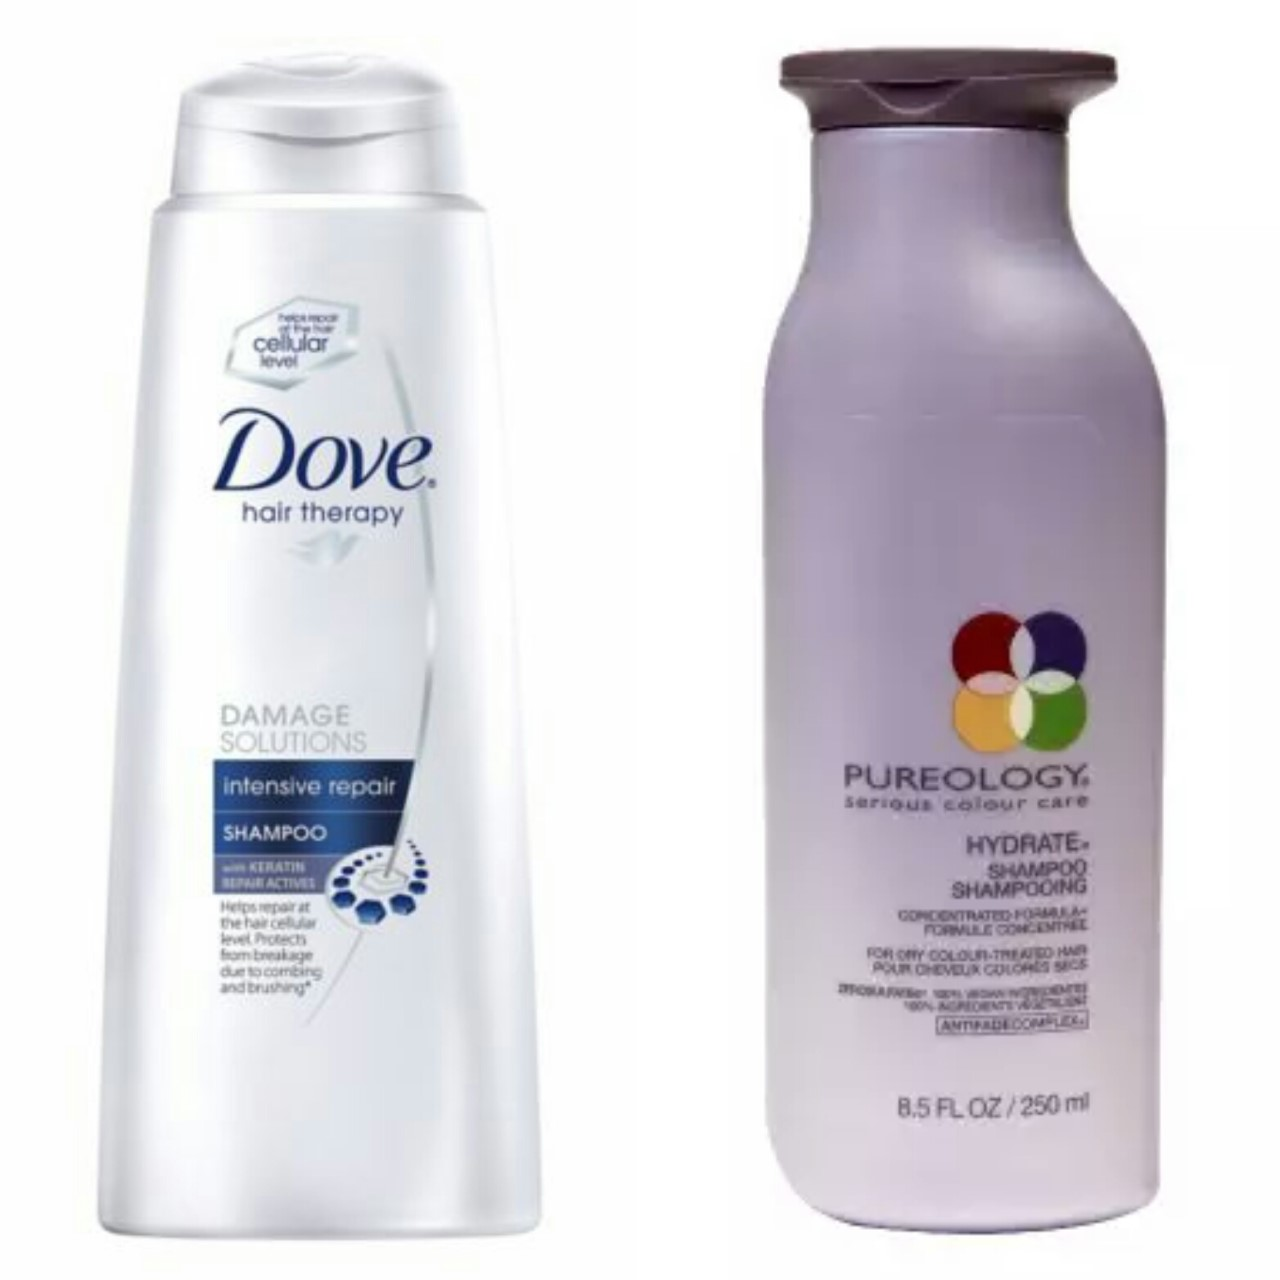 salon shampoo vs drug store shampoo 180 degrees hair studio